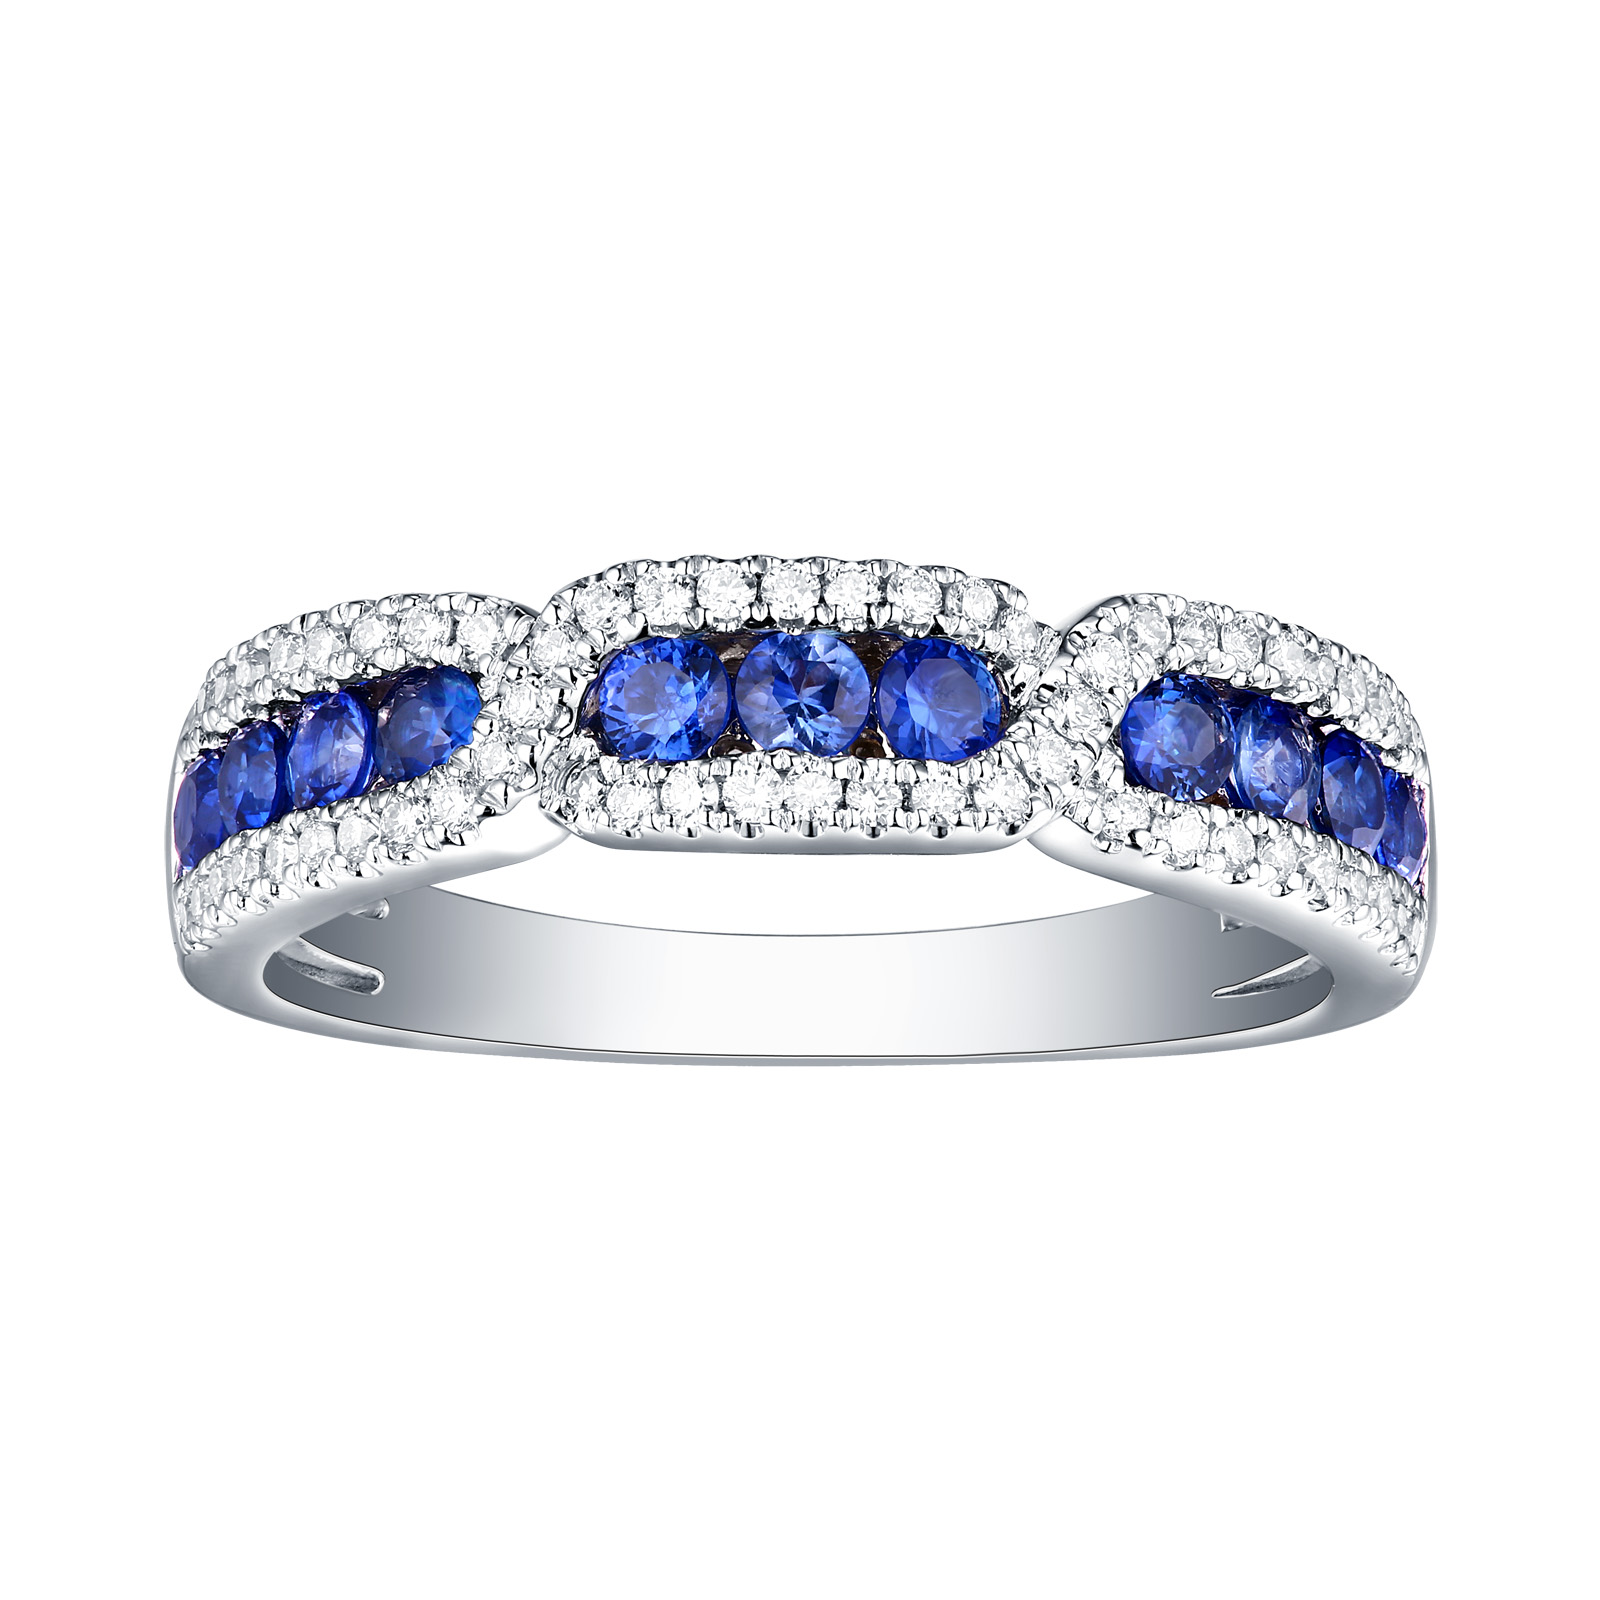 R22402BSA – 14K White Gold Blue Sapphire and Diamond Ring, 0.74 TCW